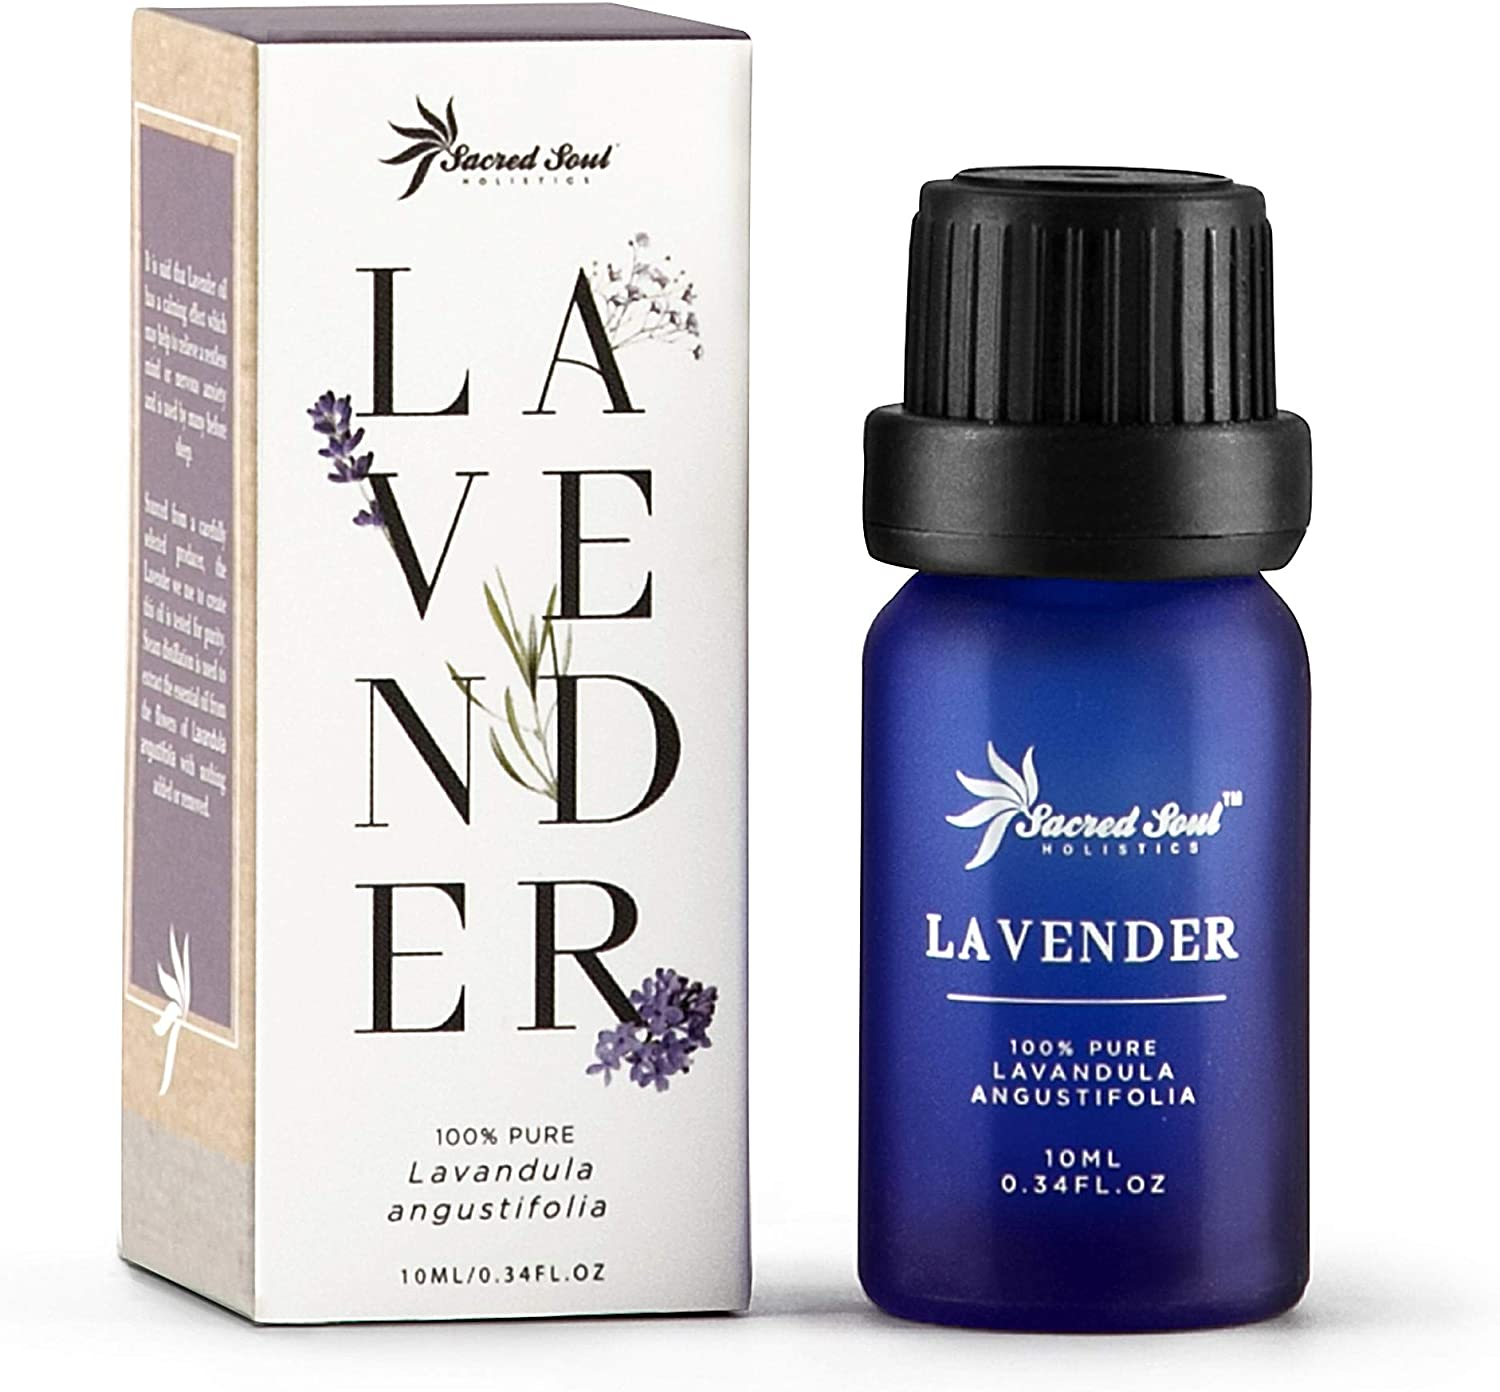 Sacred Soul 100% Pure Lavender Essential Oil - 10ml - Organically Grown - GCMS Tested - Calming & Relaxing - Perfect For Aromatherapy, Diffuser or Burner, Candle & Soap Making, Skin